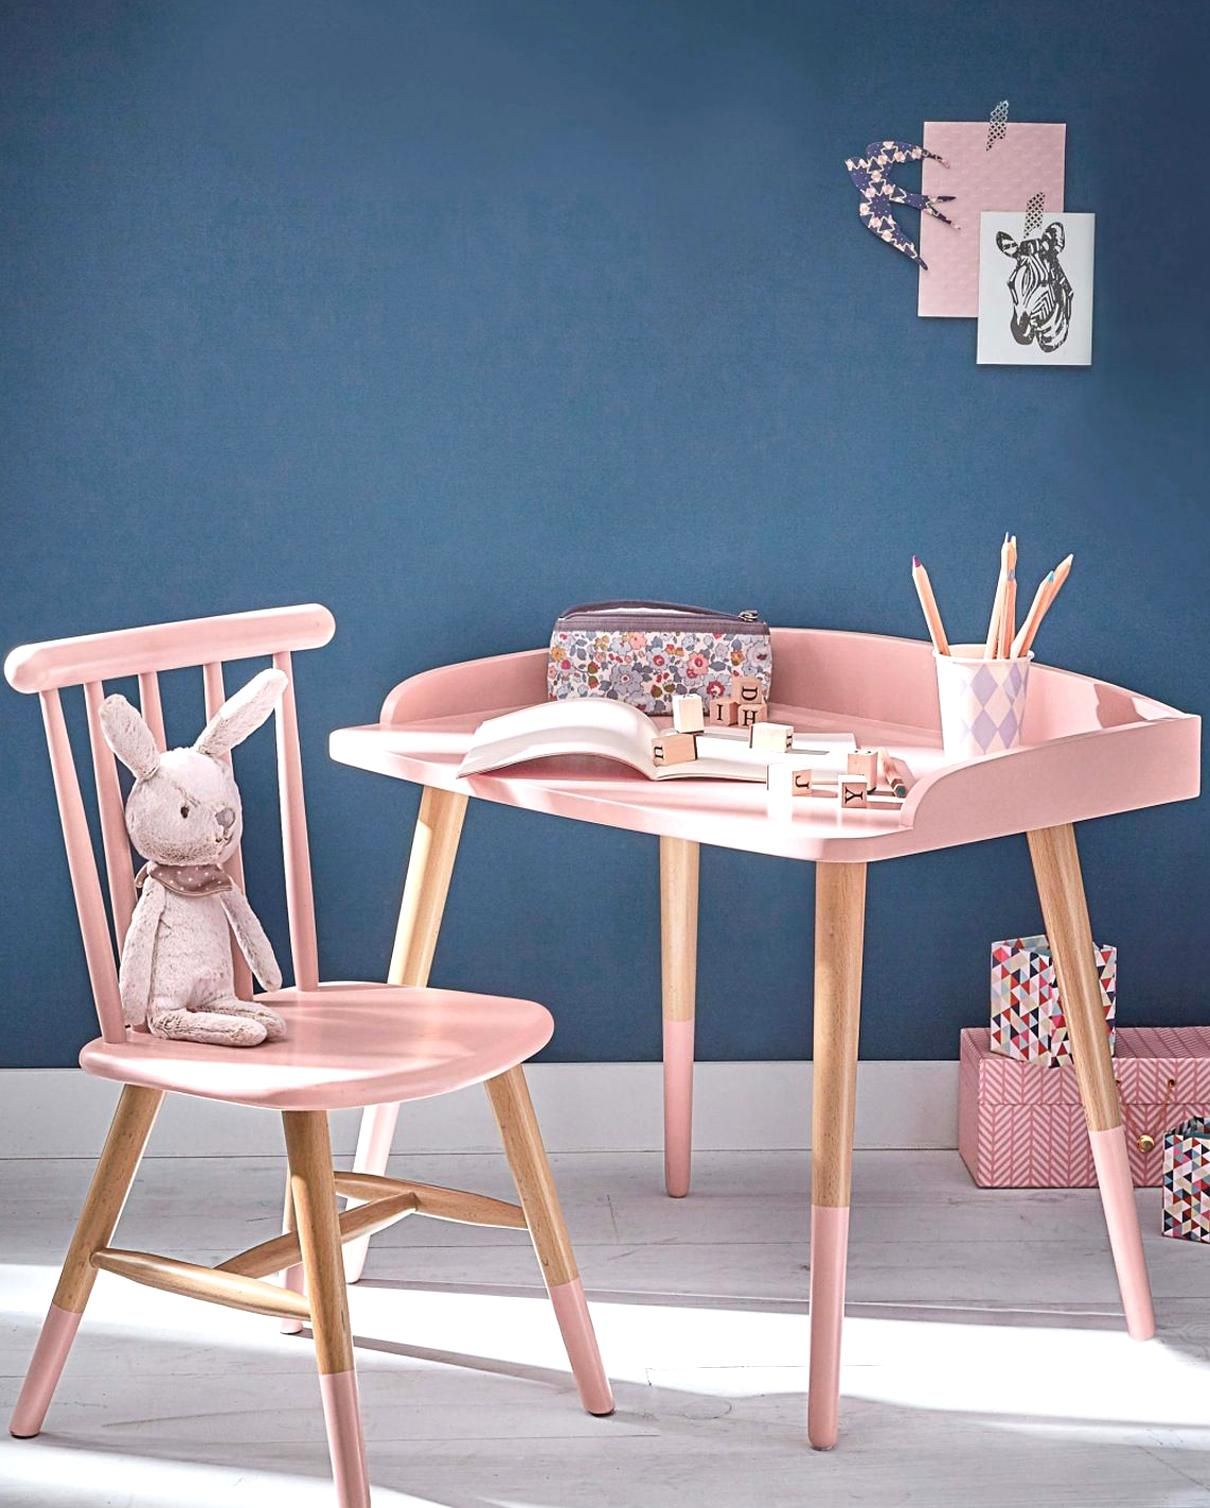 Dcoration De La Chambre Denfant Murs Bleu Marine Parquet Peint En Blanc Ensemble Bureau Et Chaise S In 2020 Pink Kids Bedrooms Kids Bedroom Designs Kids Bedroom Decor